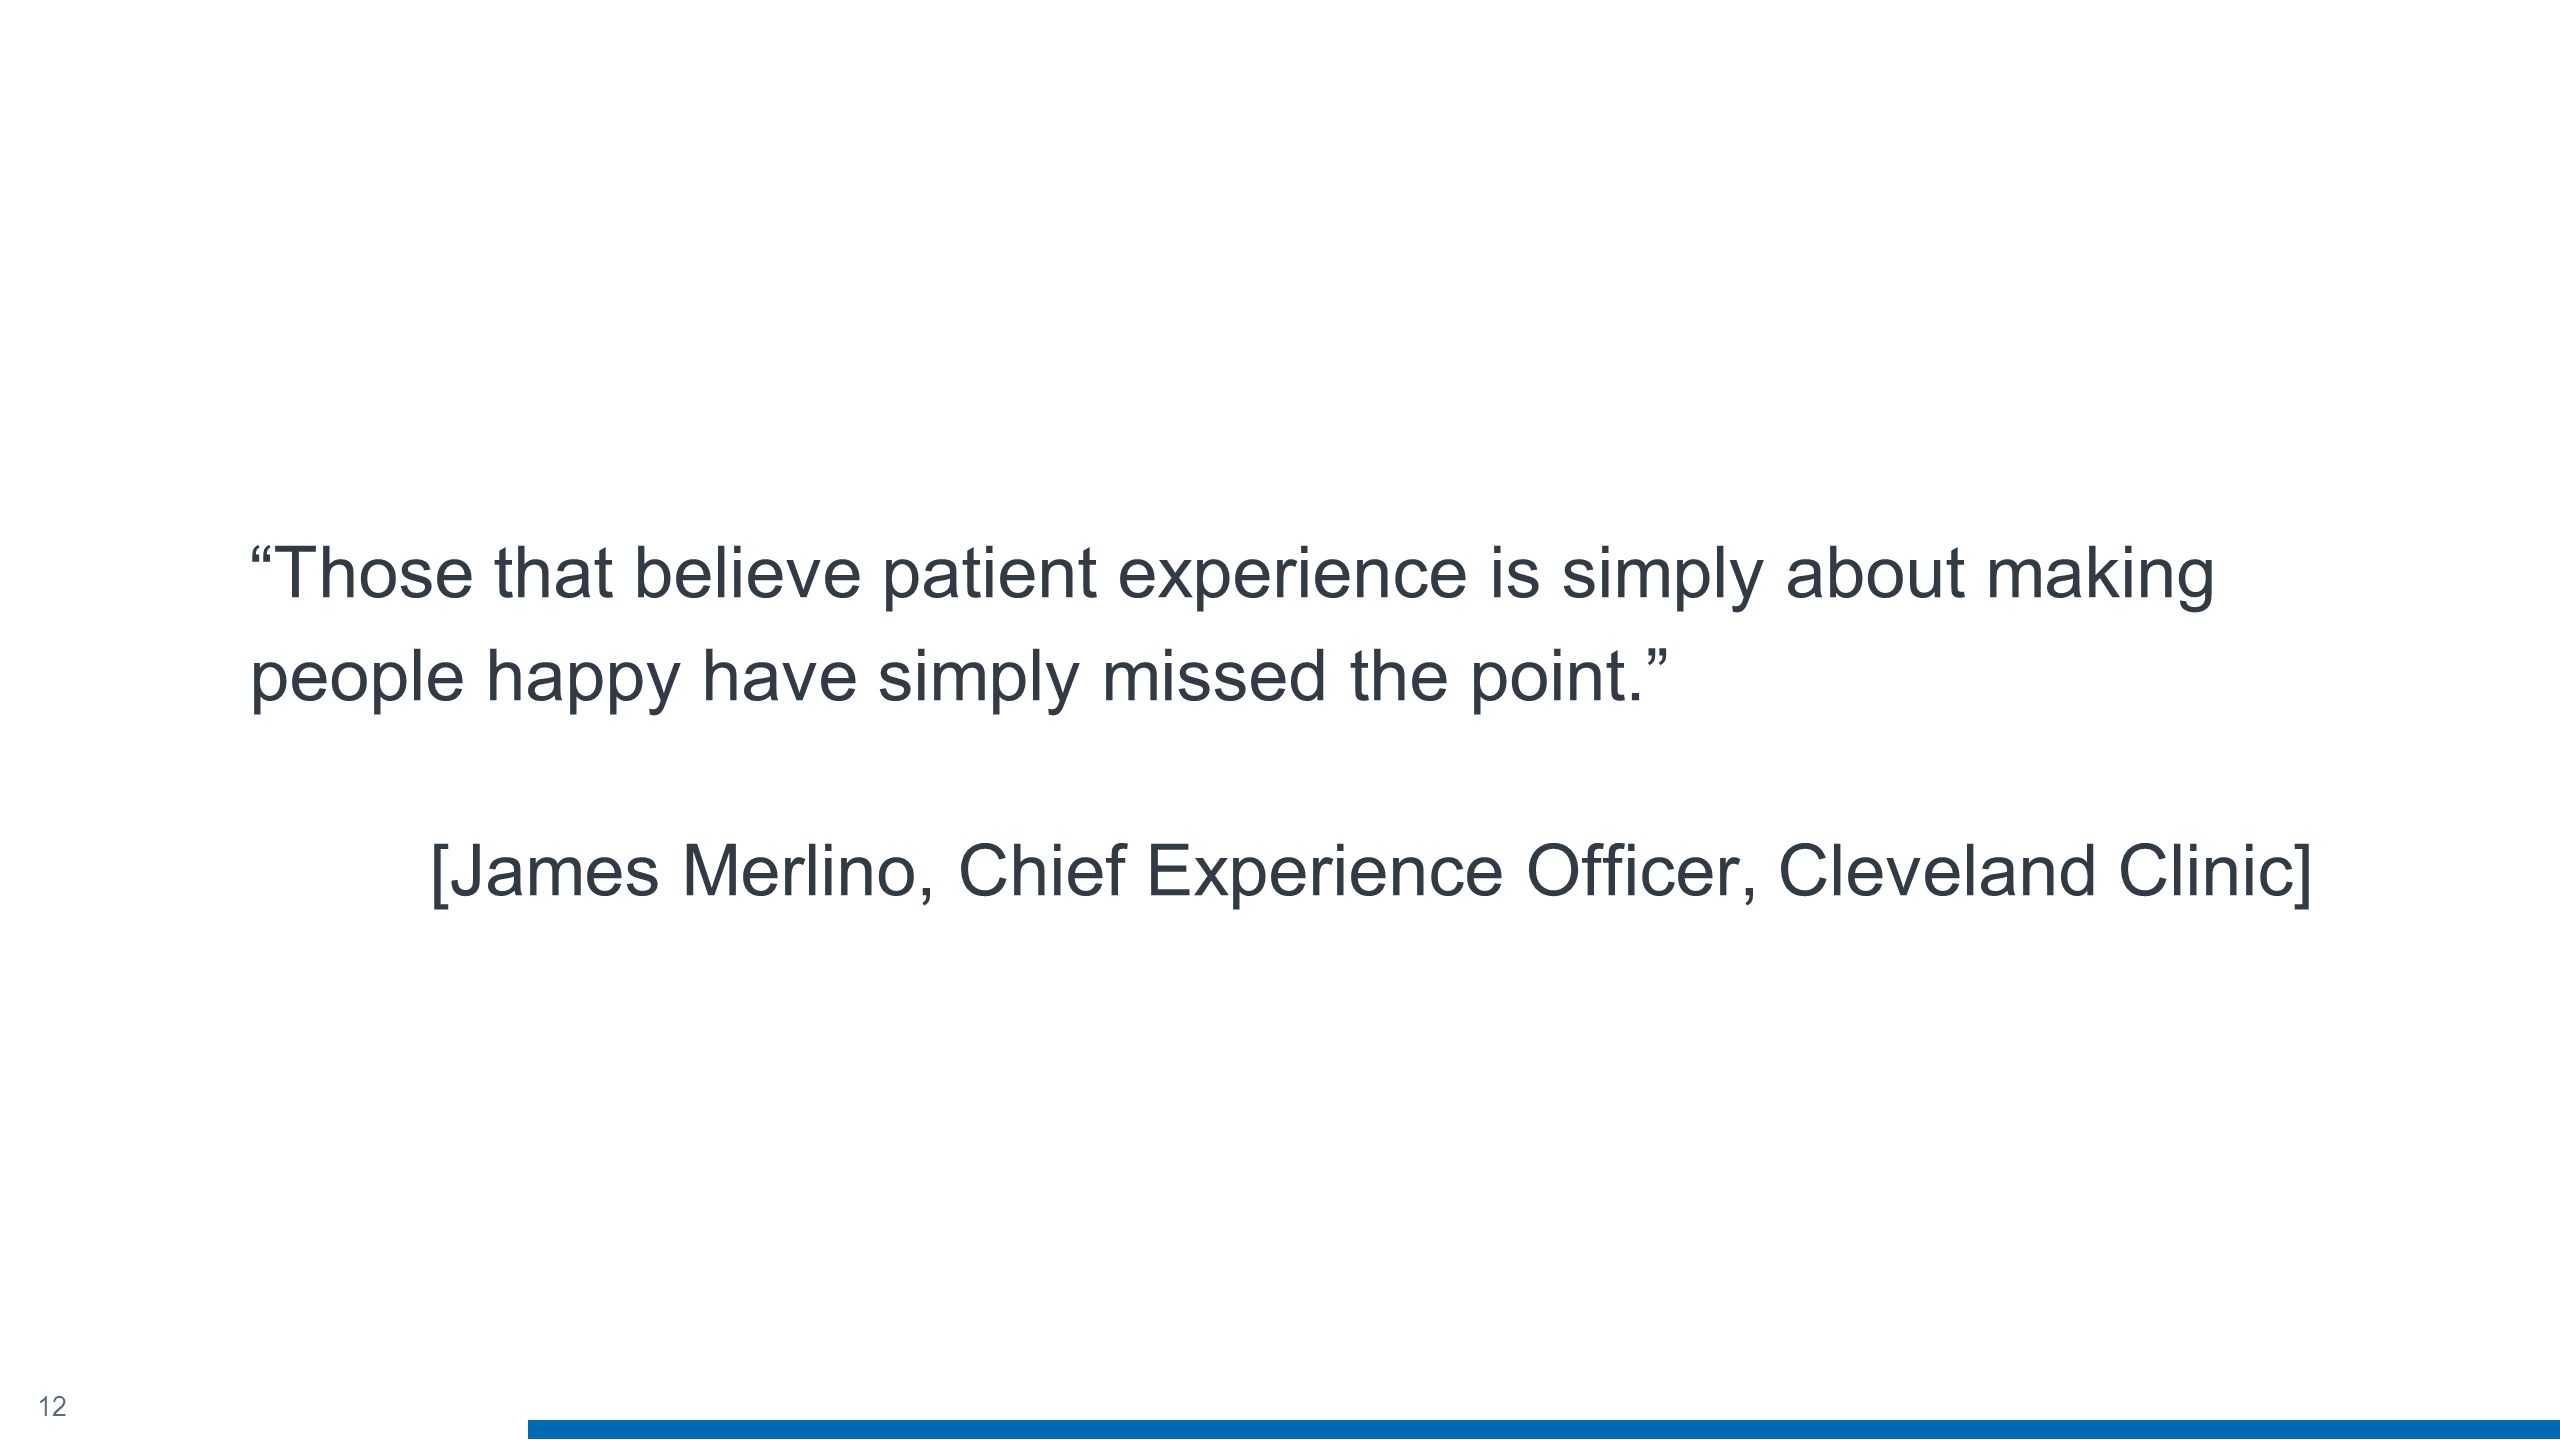 12 Those that believe patient experience is simply about making people happy have simply missed the point. [James Merlino, Chief Experience Officer, Cleveland Clinic]